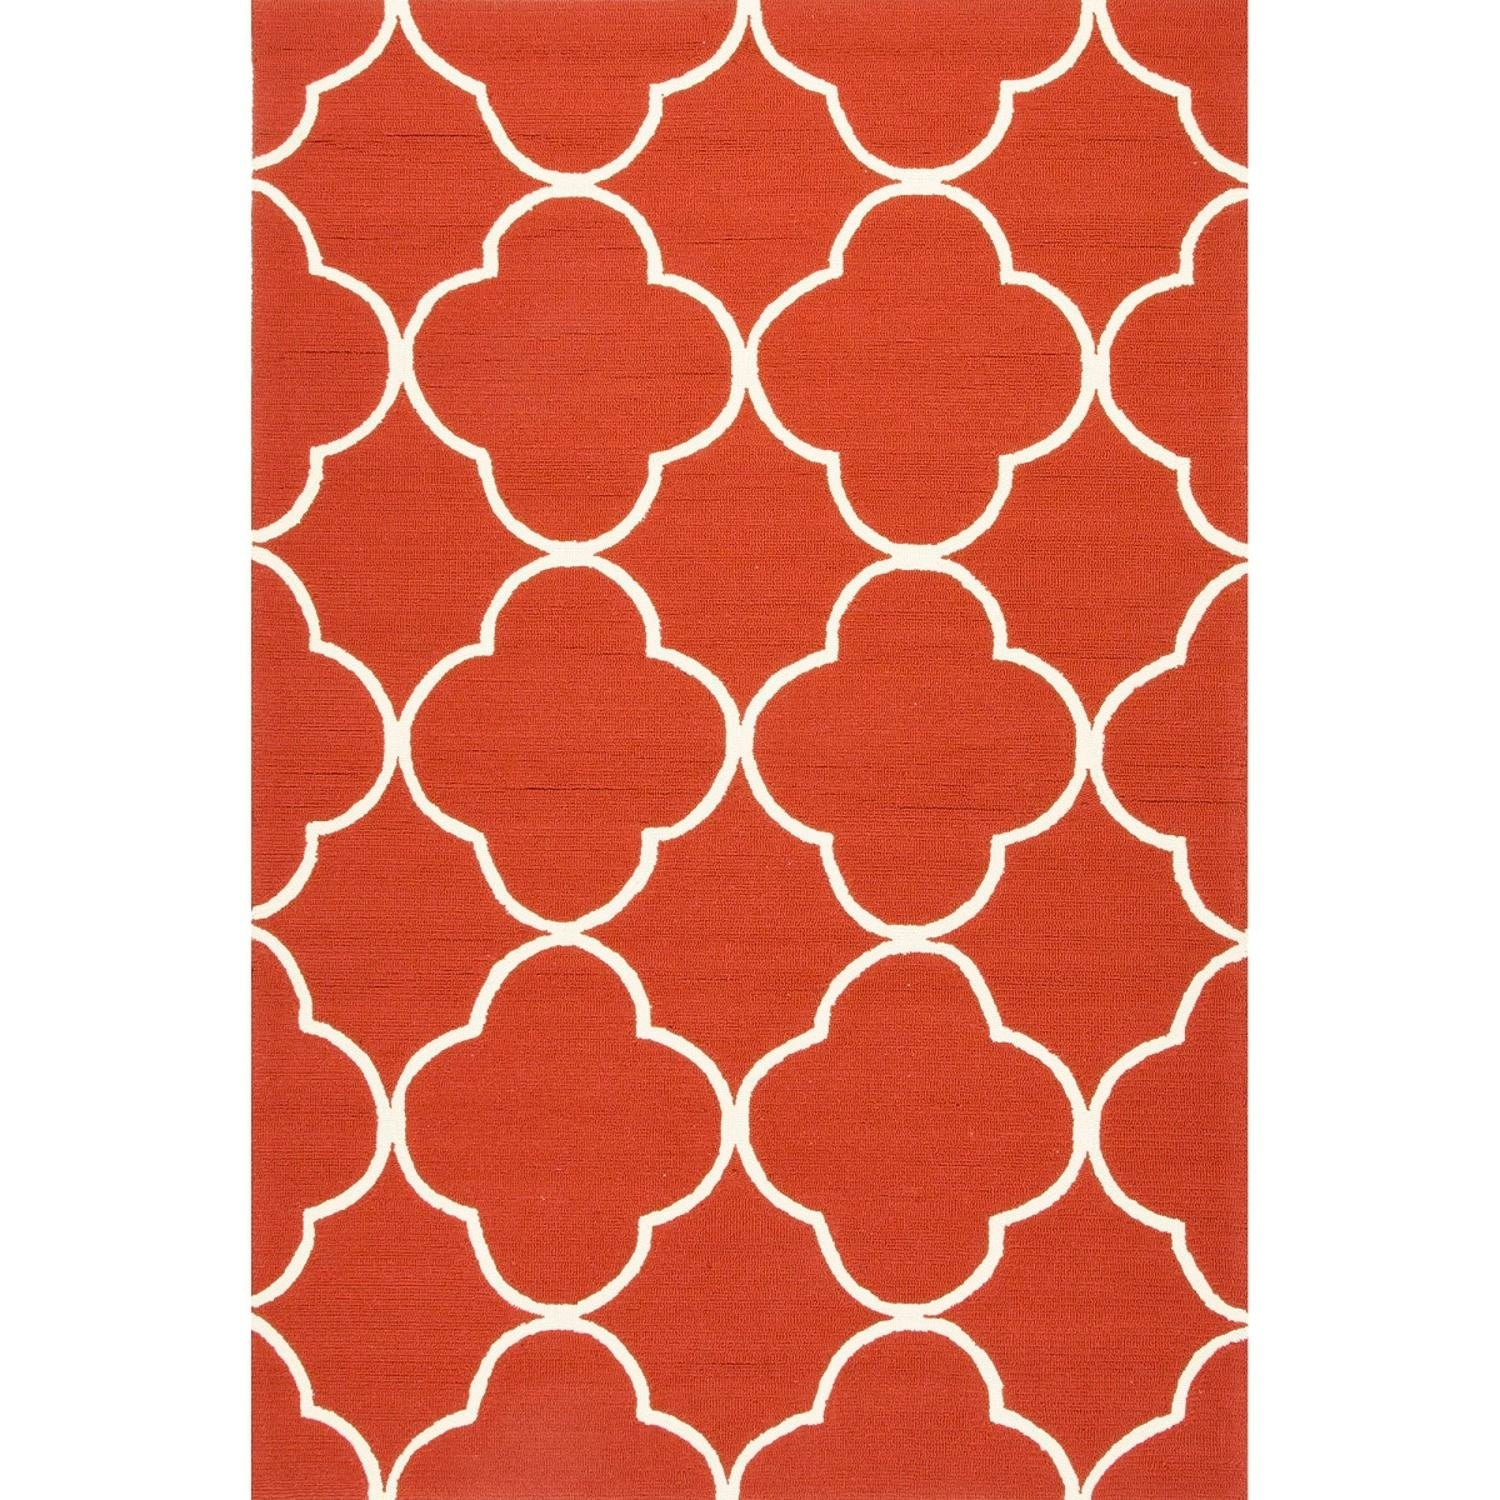 35 X 55 Geometric Patterned Red And White Sparten Outdoor